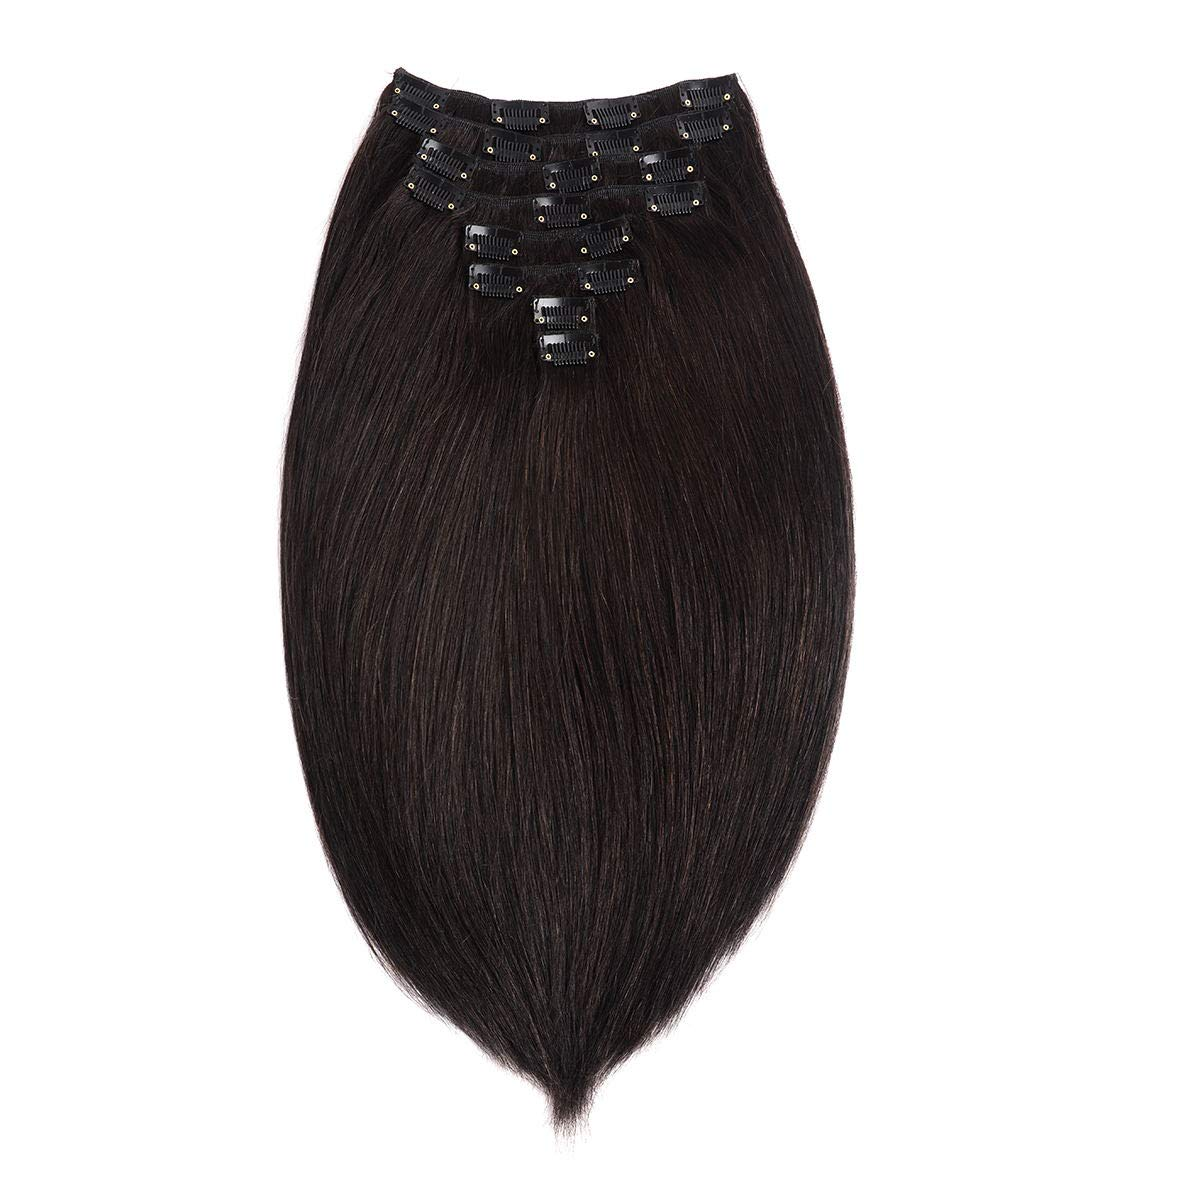 Clip in Hair Extensions for Black Women Double Weft Hair Extensions Remy Human Hair Clip on Hair Extensions Grade 8A Full Head Soft Silky Straight Remy Clip In 8pcs 20clips Off Jet Black 18 Inch by Lovrosie